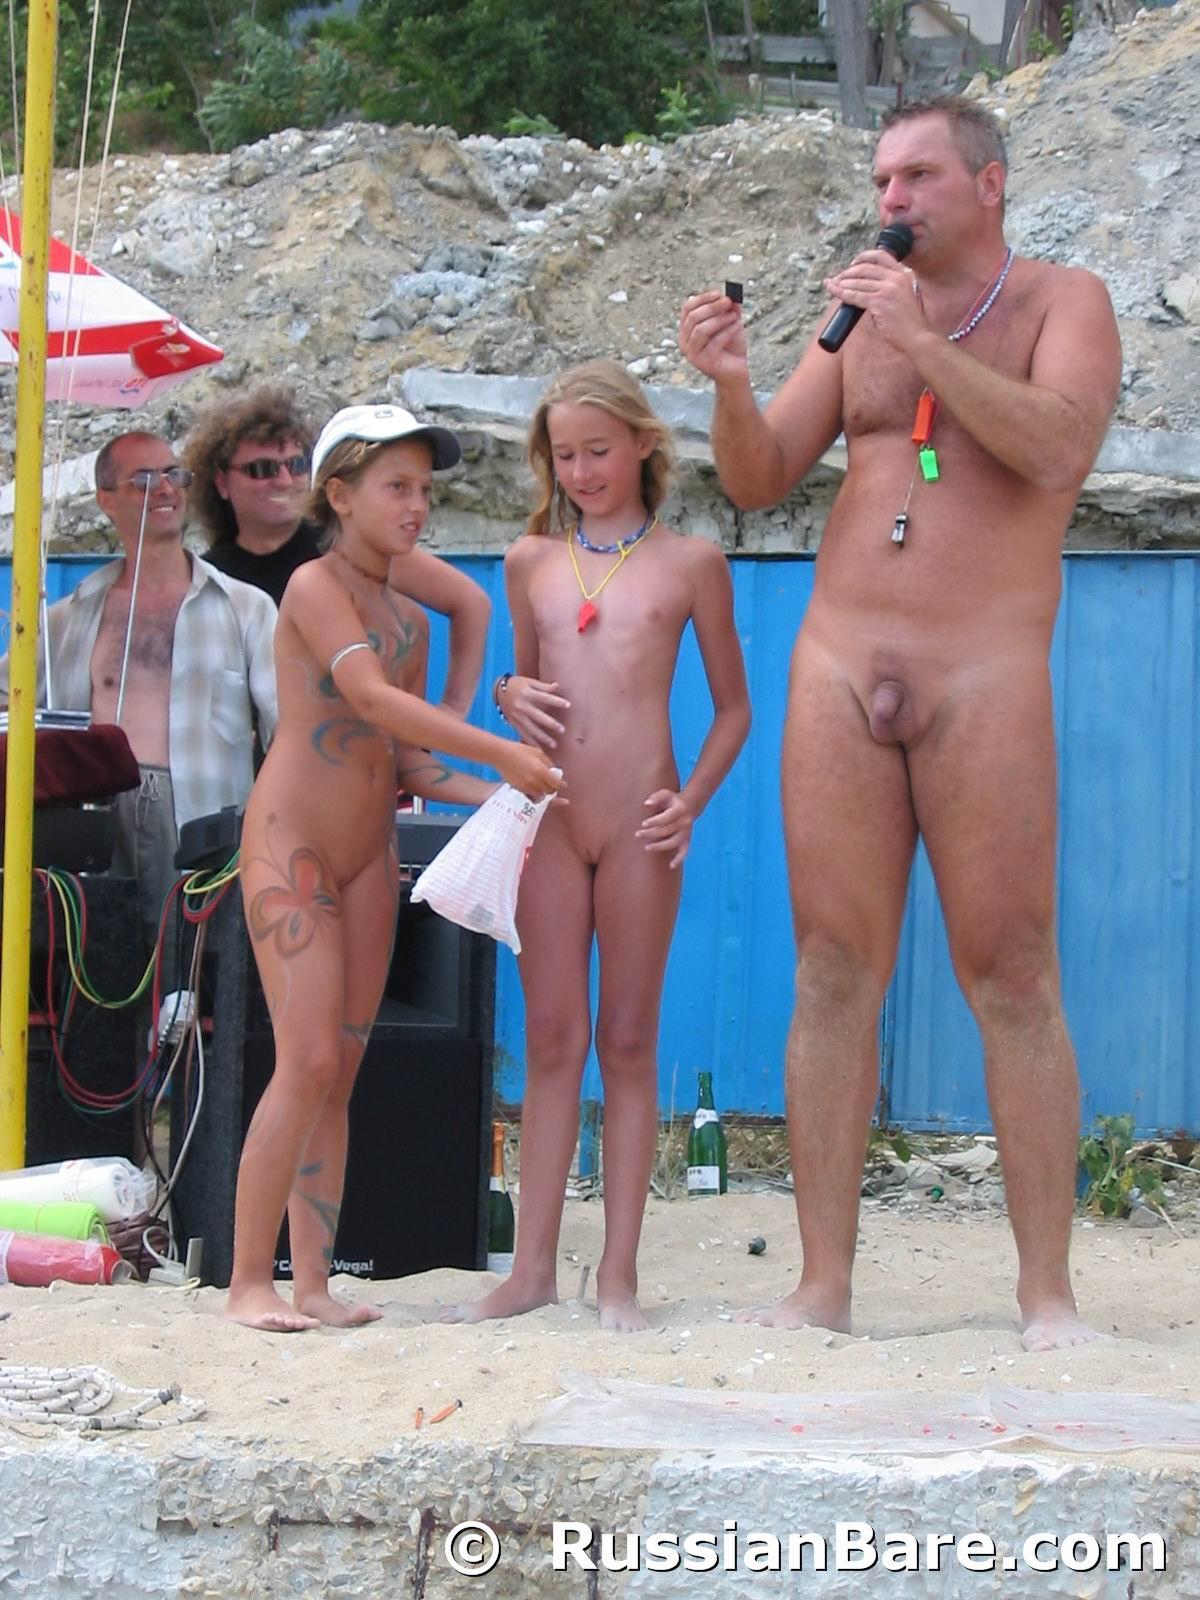 Excellent message naturism nudism remarkable, very